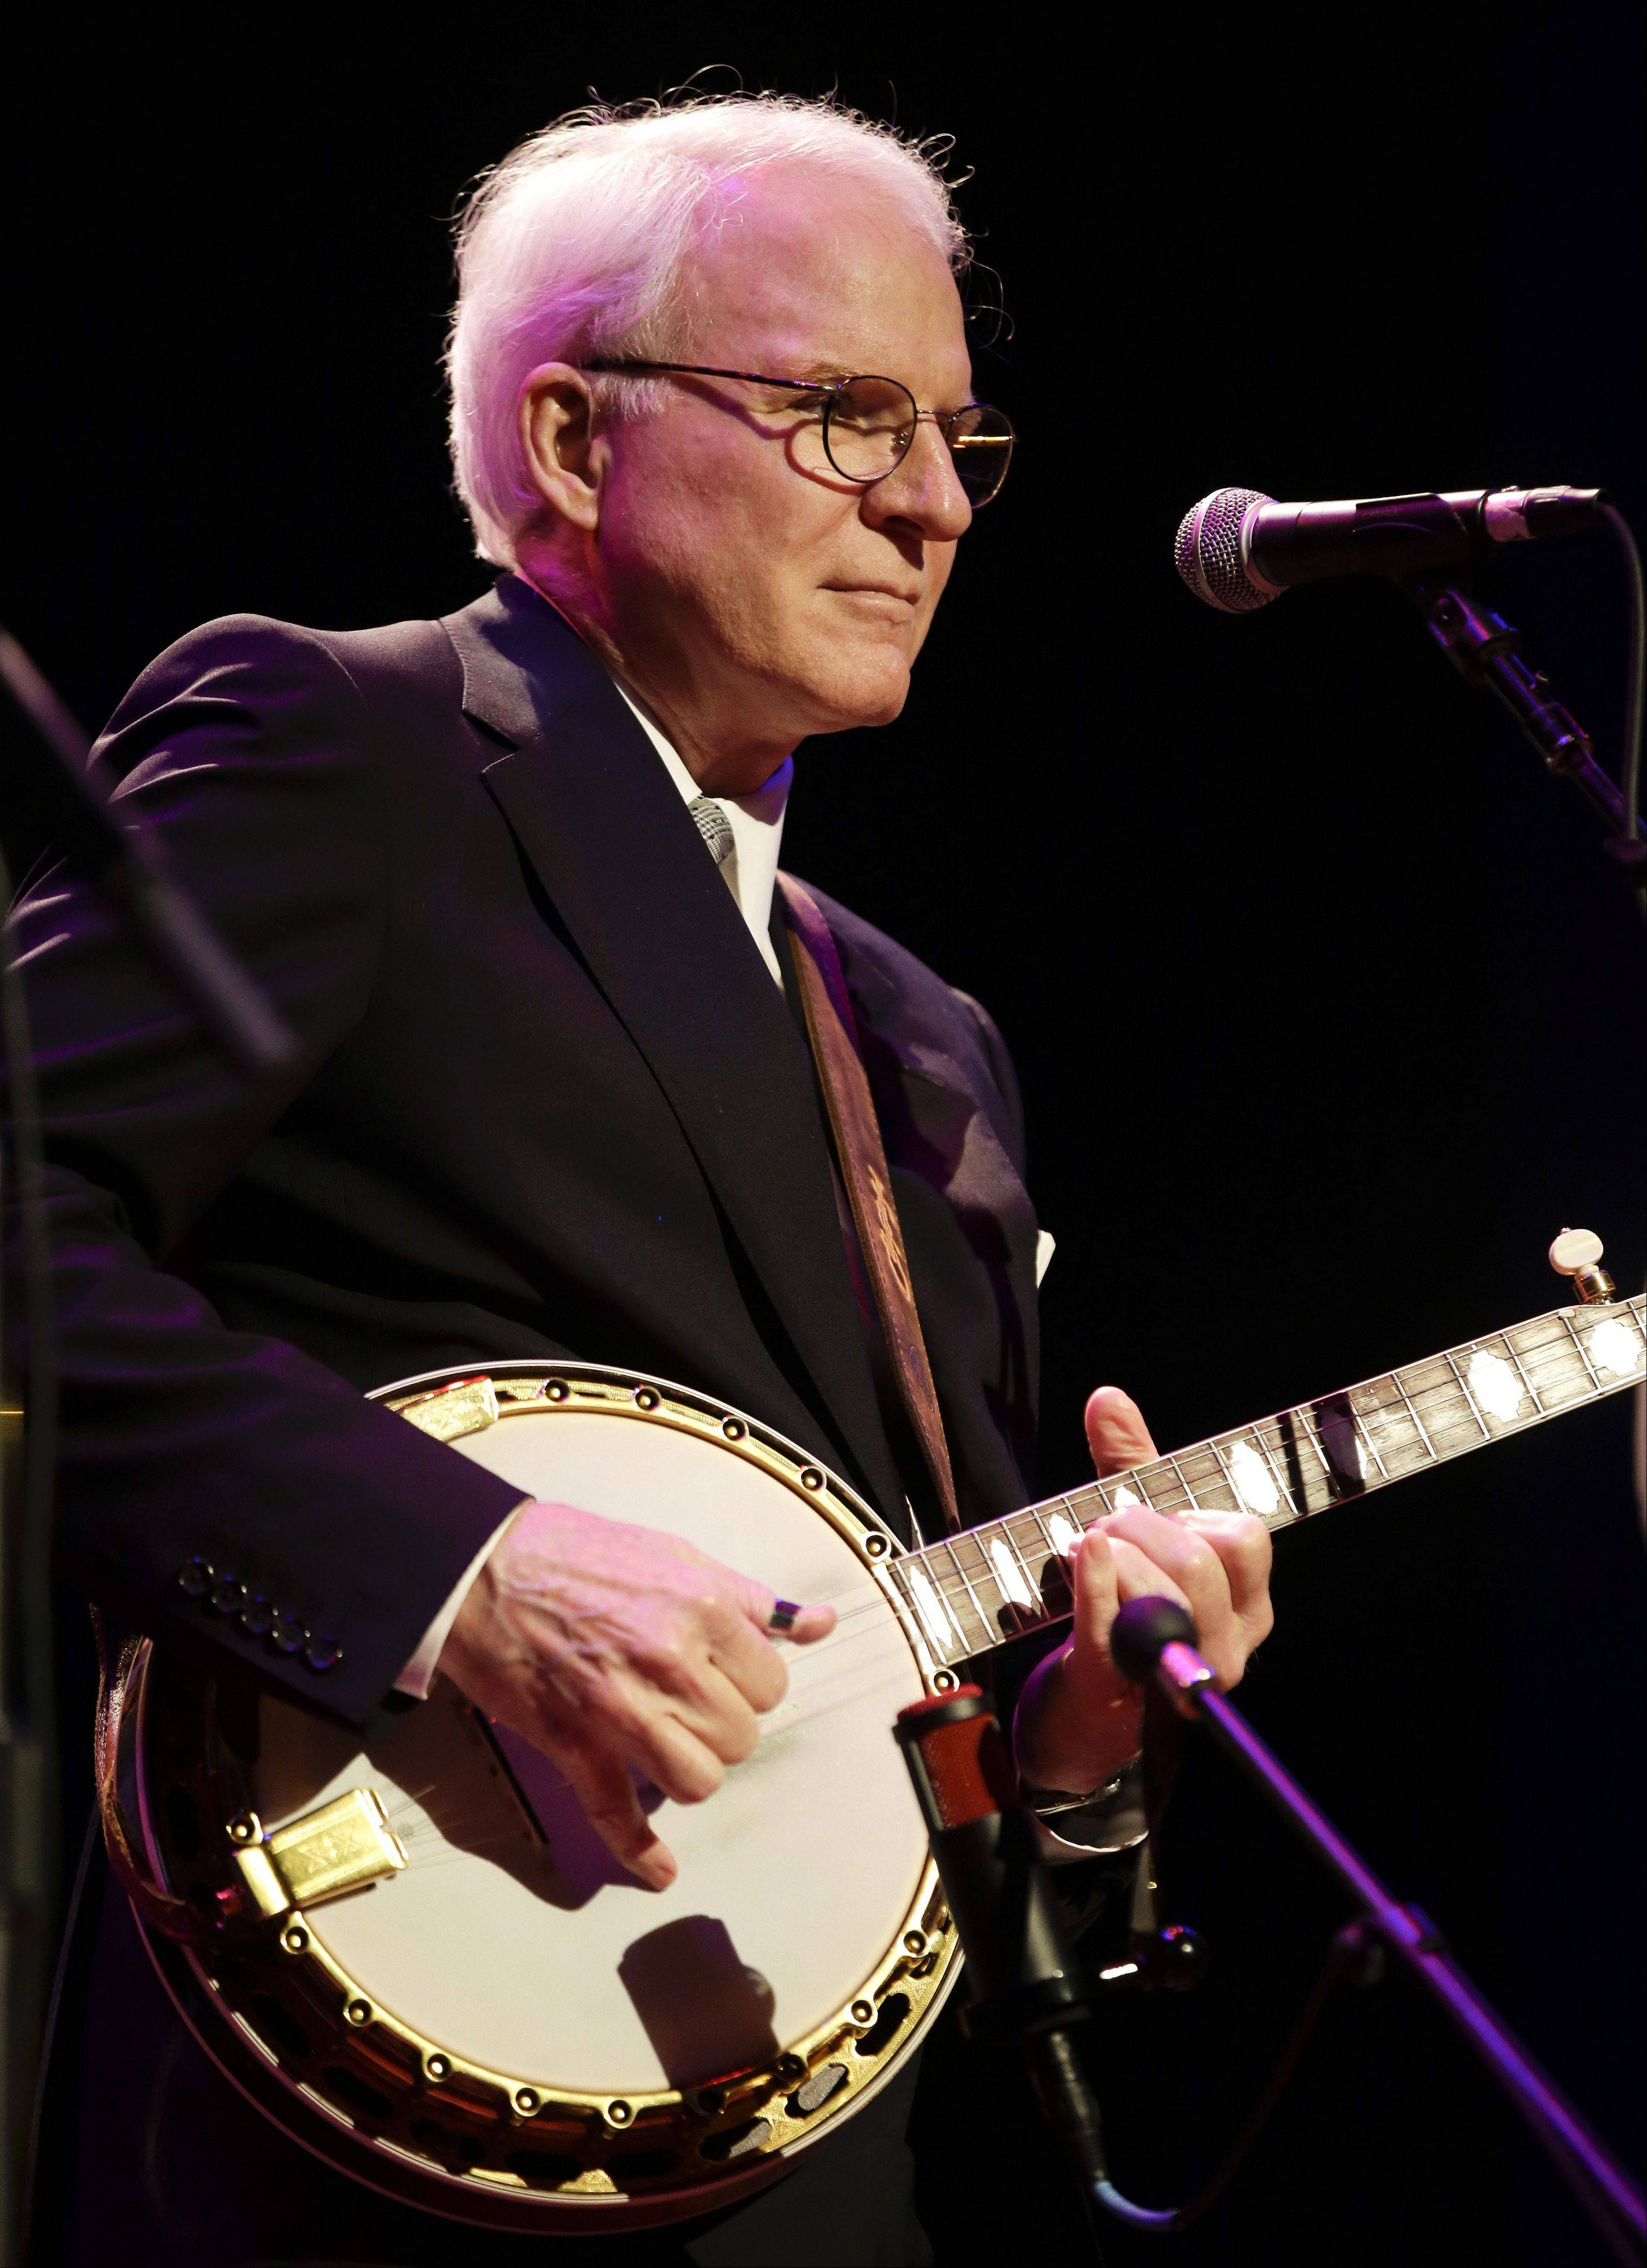 Steve Martin and the Steep Canyon Rangers perform at the International Bluegrass Music Association Awards show Thursday in Nashville.